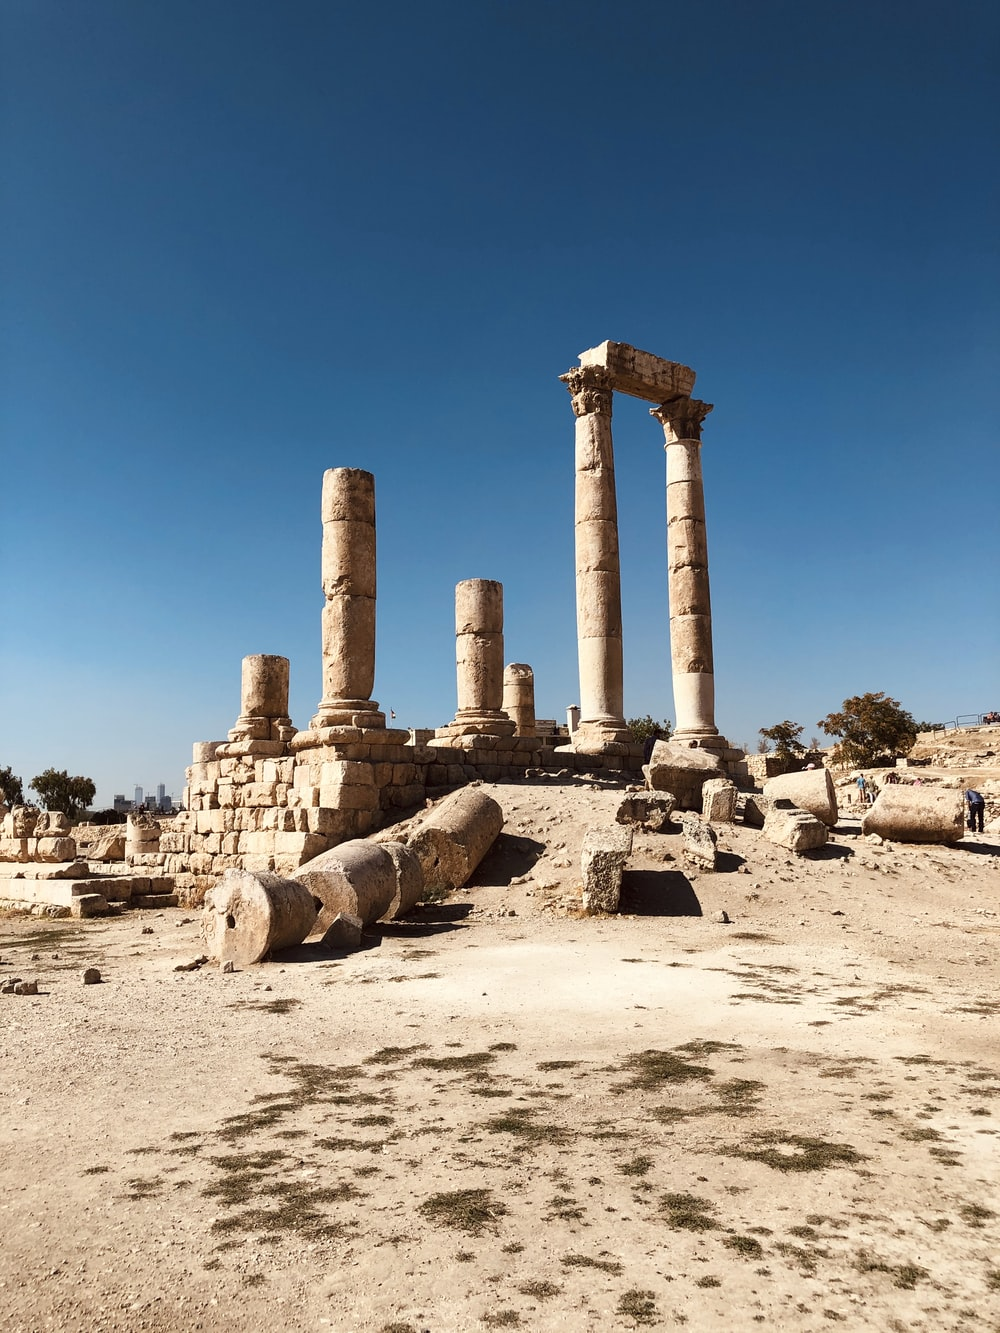 ruins of brown concrete monuments